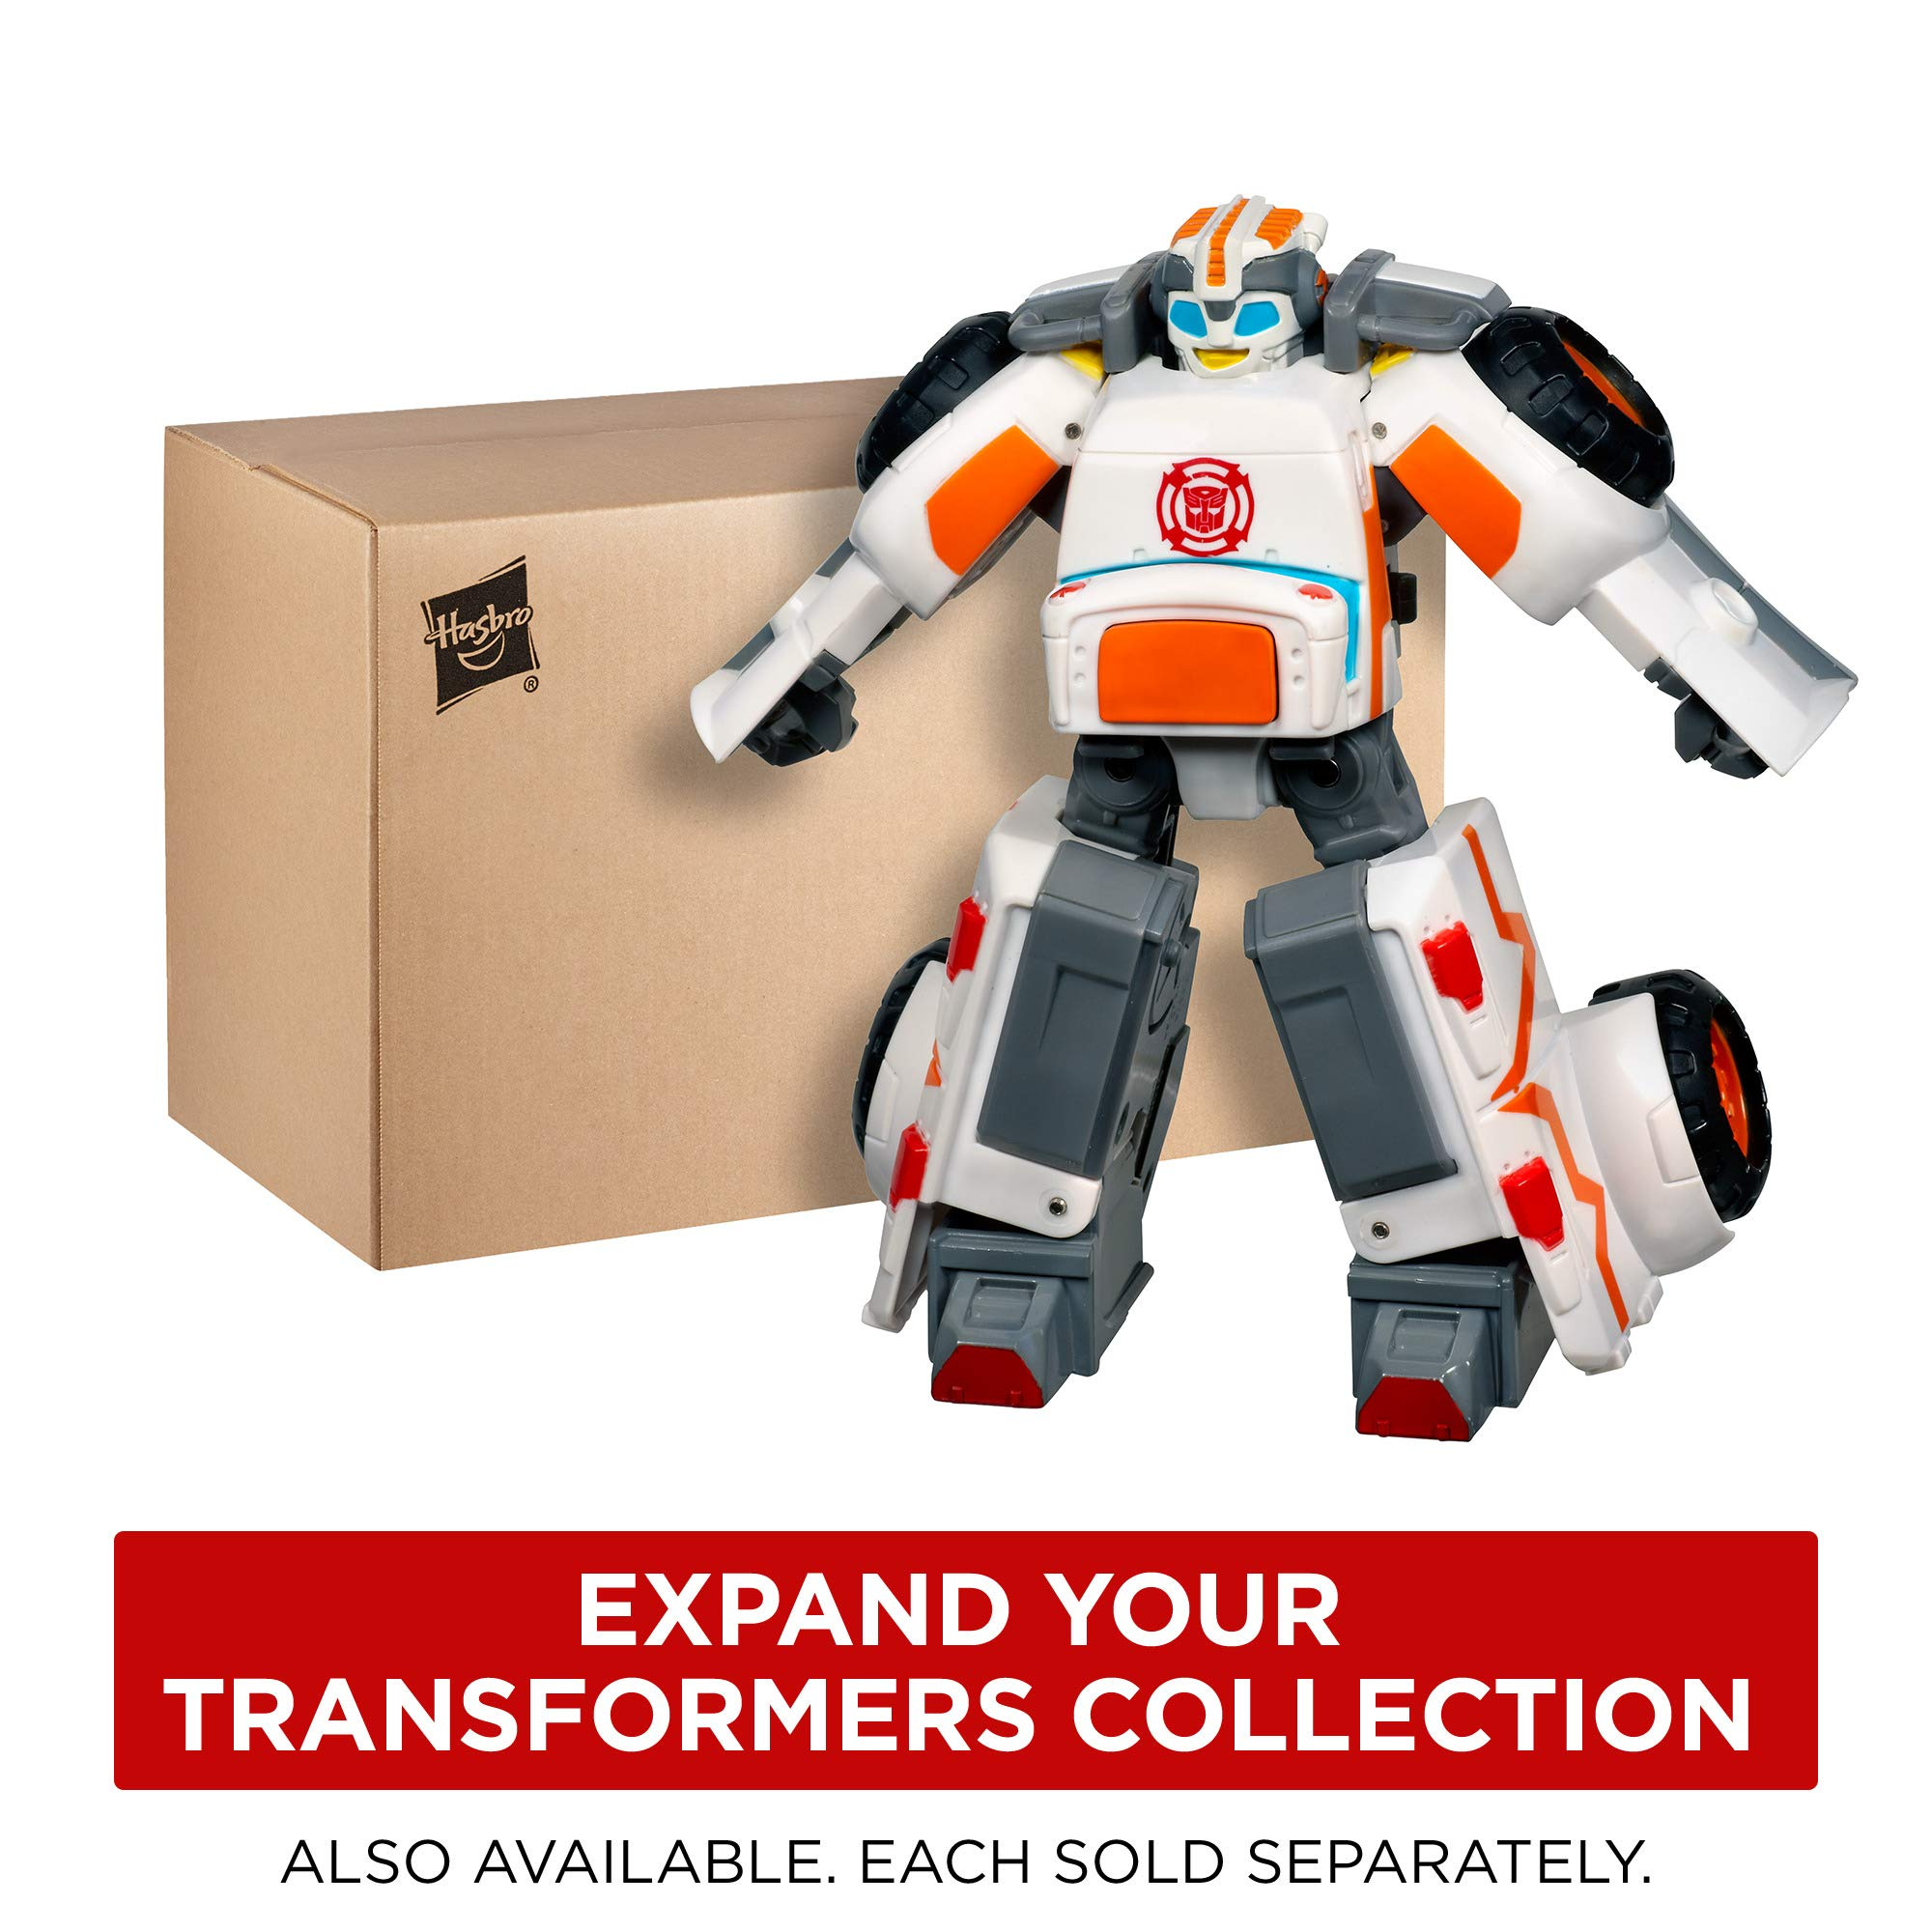 Playskool Heroes Transformers Rescue Bots Optimus Prime Action Figure, Ages 3-7 (Amazon Exclusive) by Playskool (Image #6)